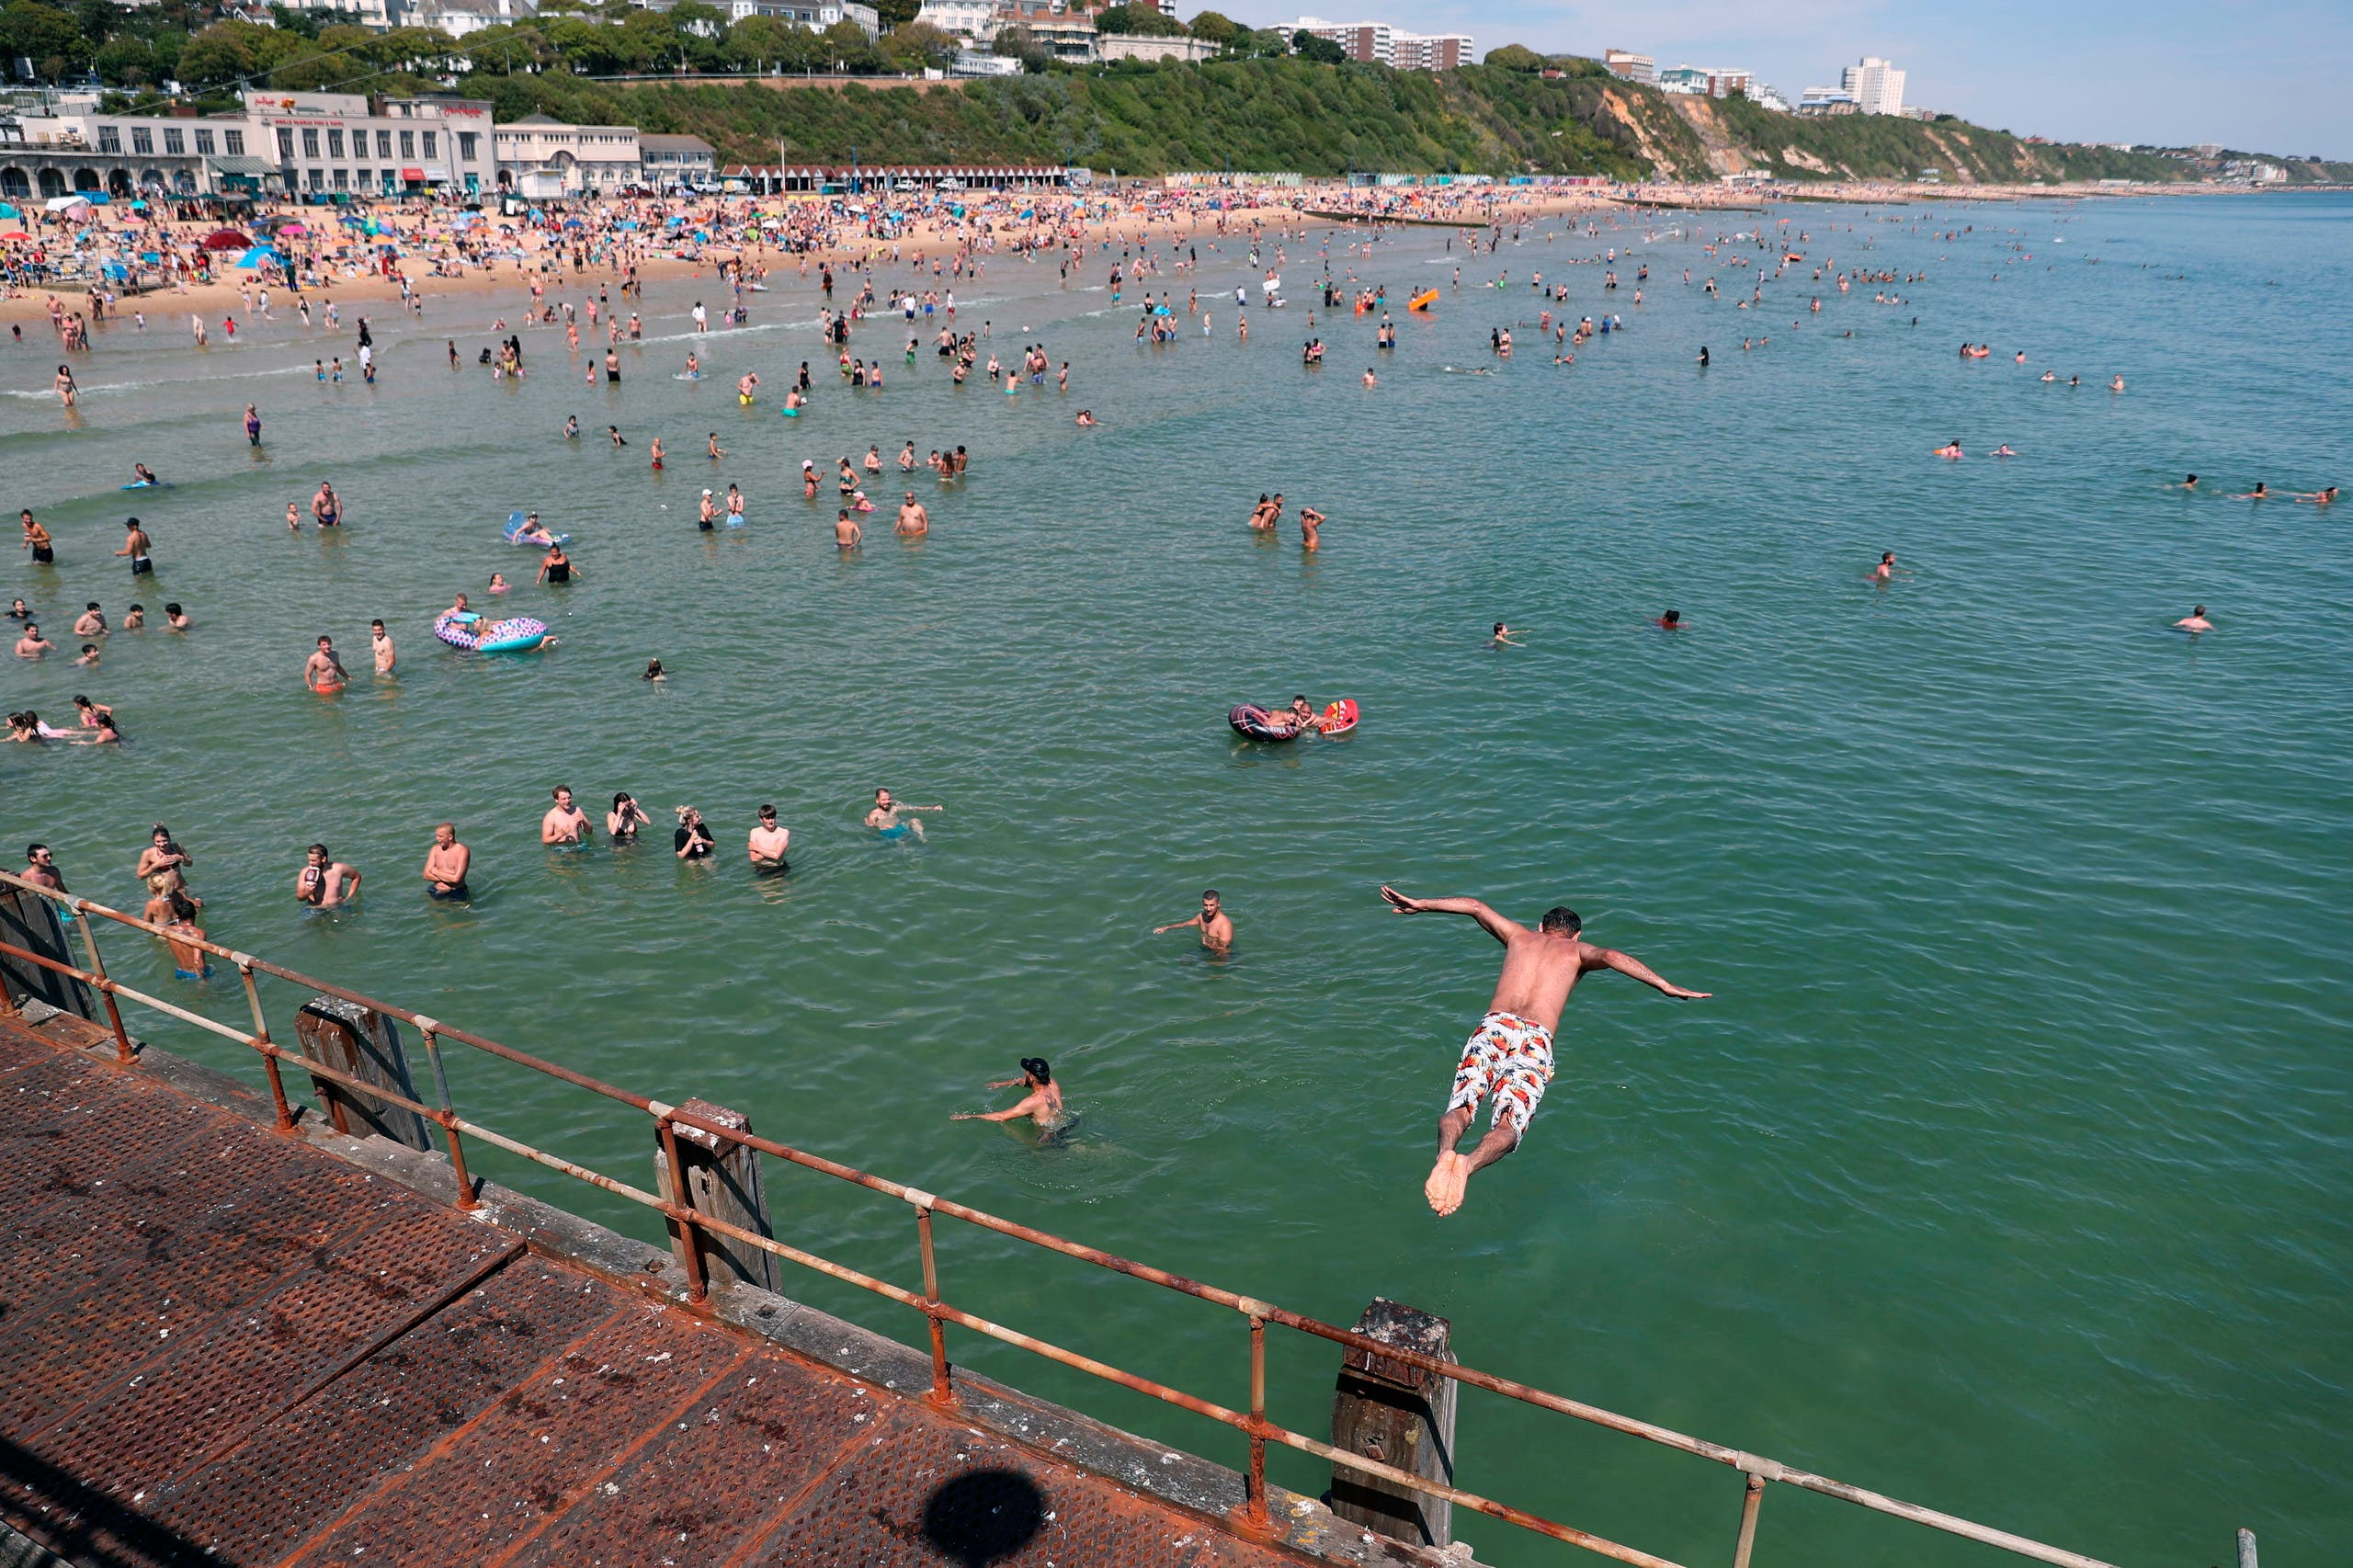 A swimmer jumps into the sea at Bournemouth Beach in Bournemouth, England on June 2, 2020. (AP)